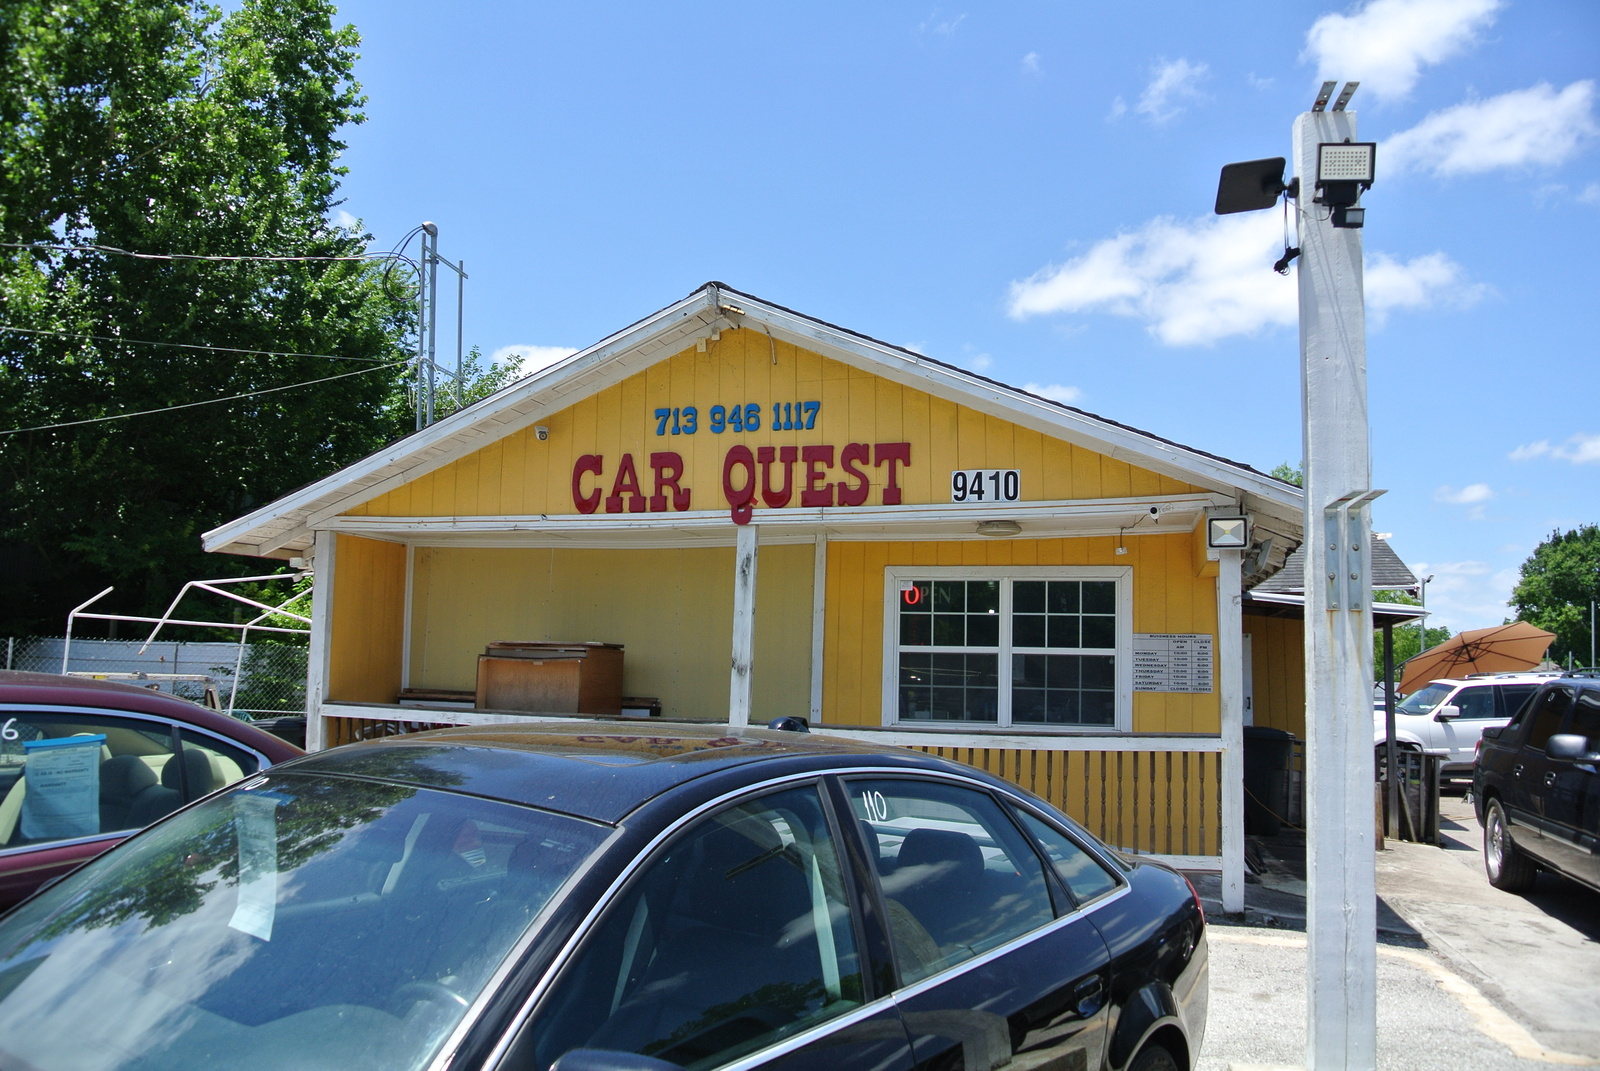 Car Quest Auto Sales - Houston, TX: Read Consumer reviews, Browse Used and New Cars for Sale